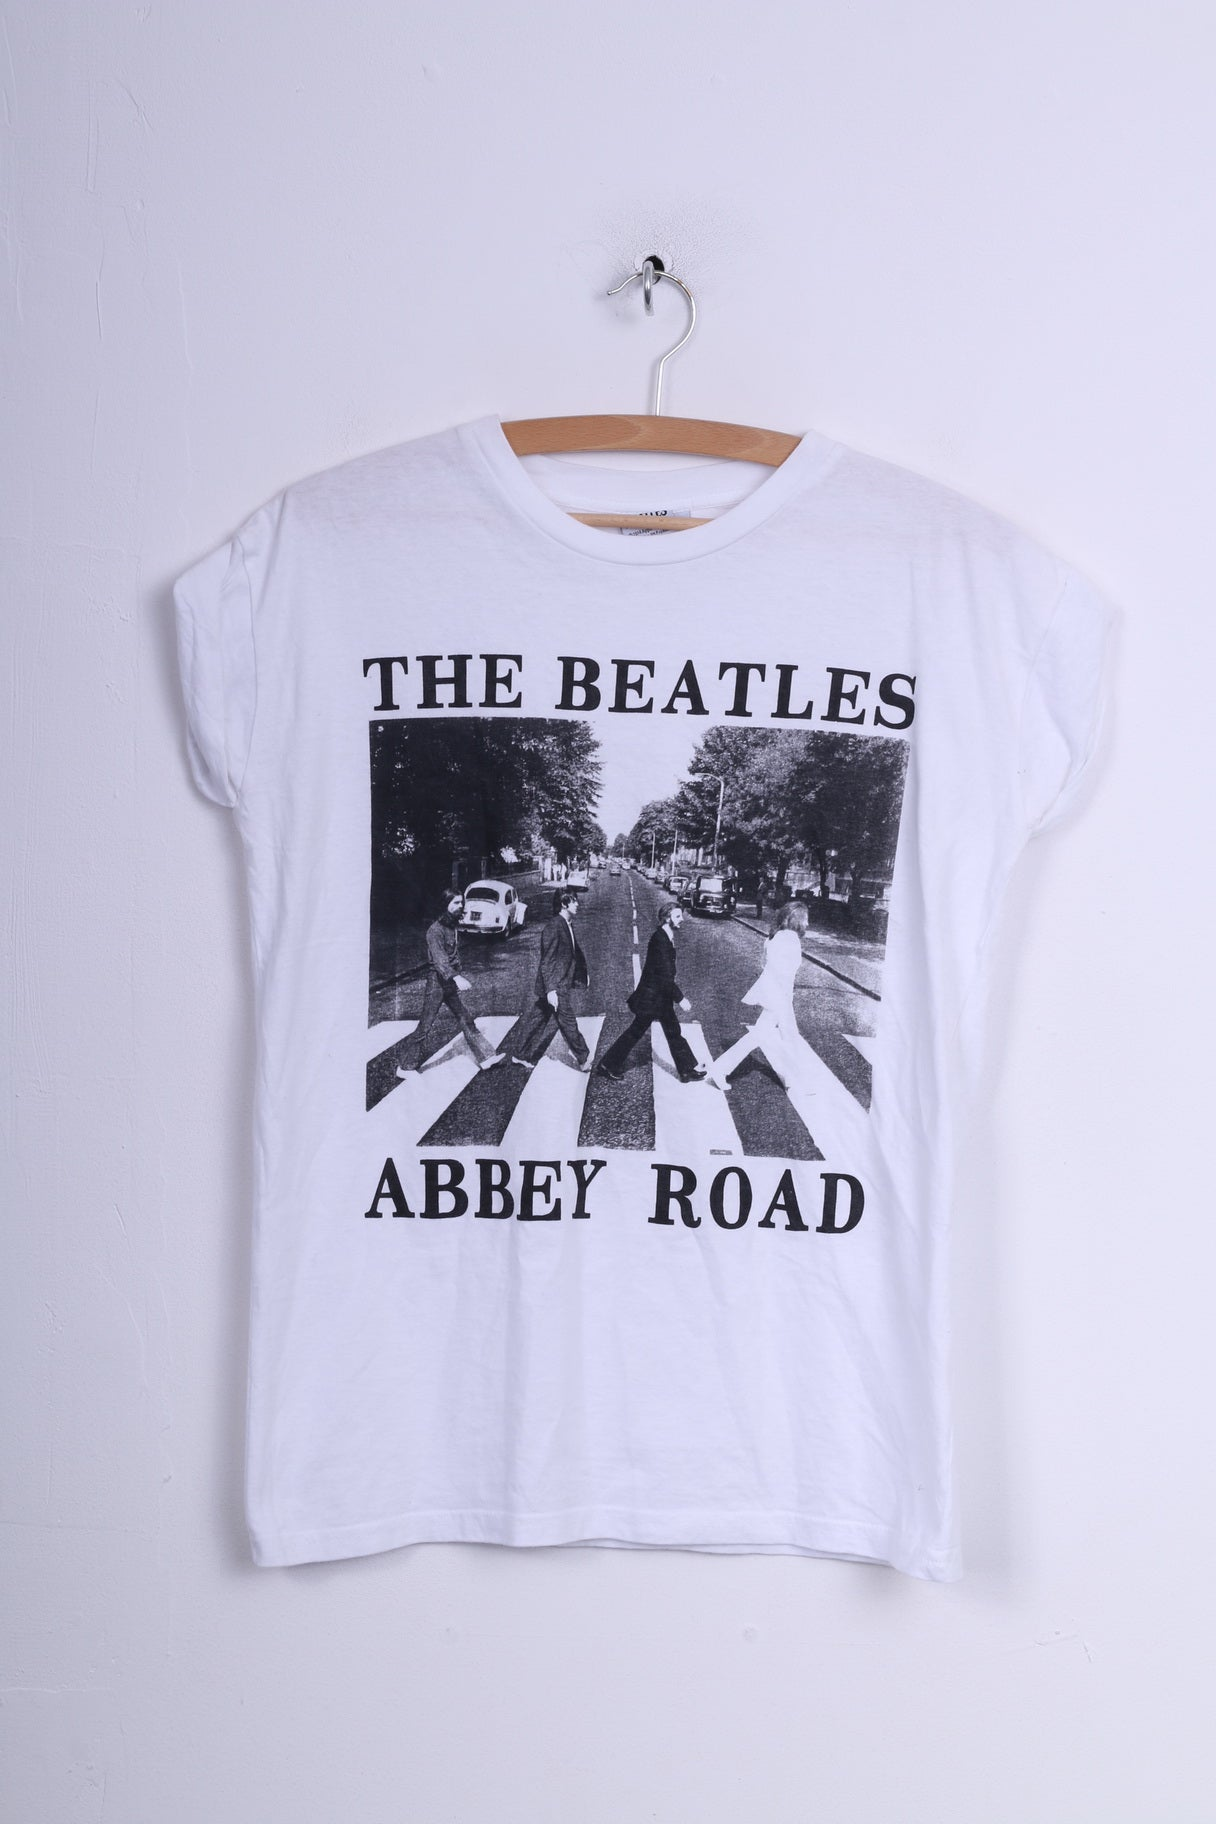 And that's why we've brought together some of the Beatles t-shirts that we could find. From the days of Yellow Submarine, to Rubber Soul and Abbey Road you can find a .